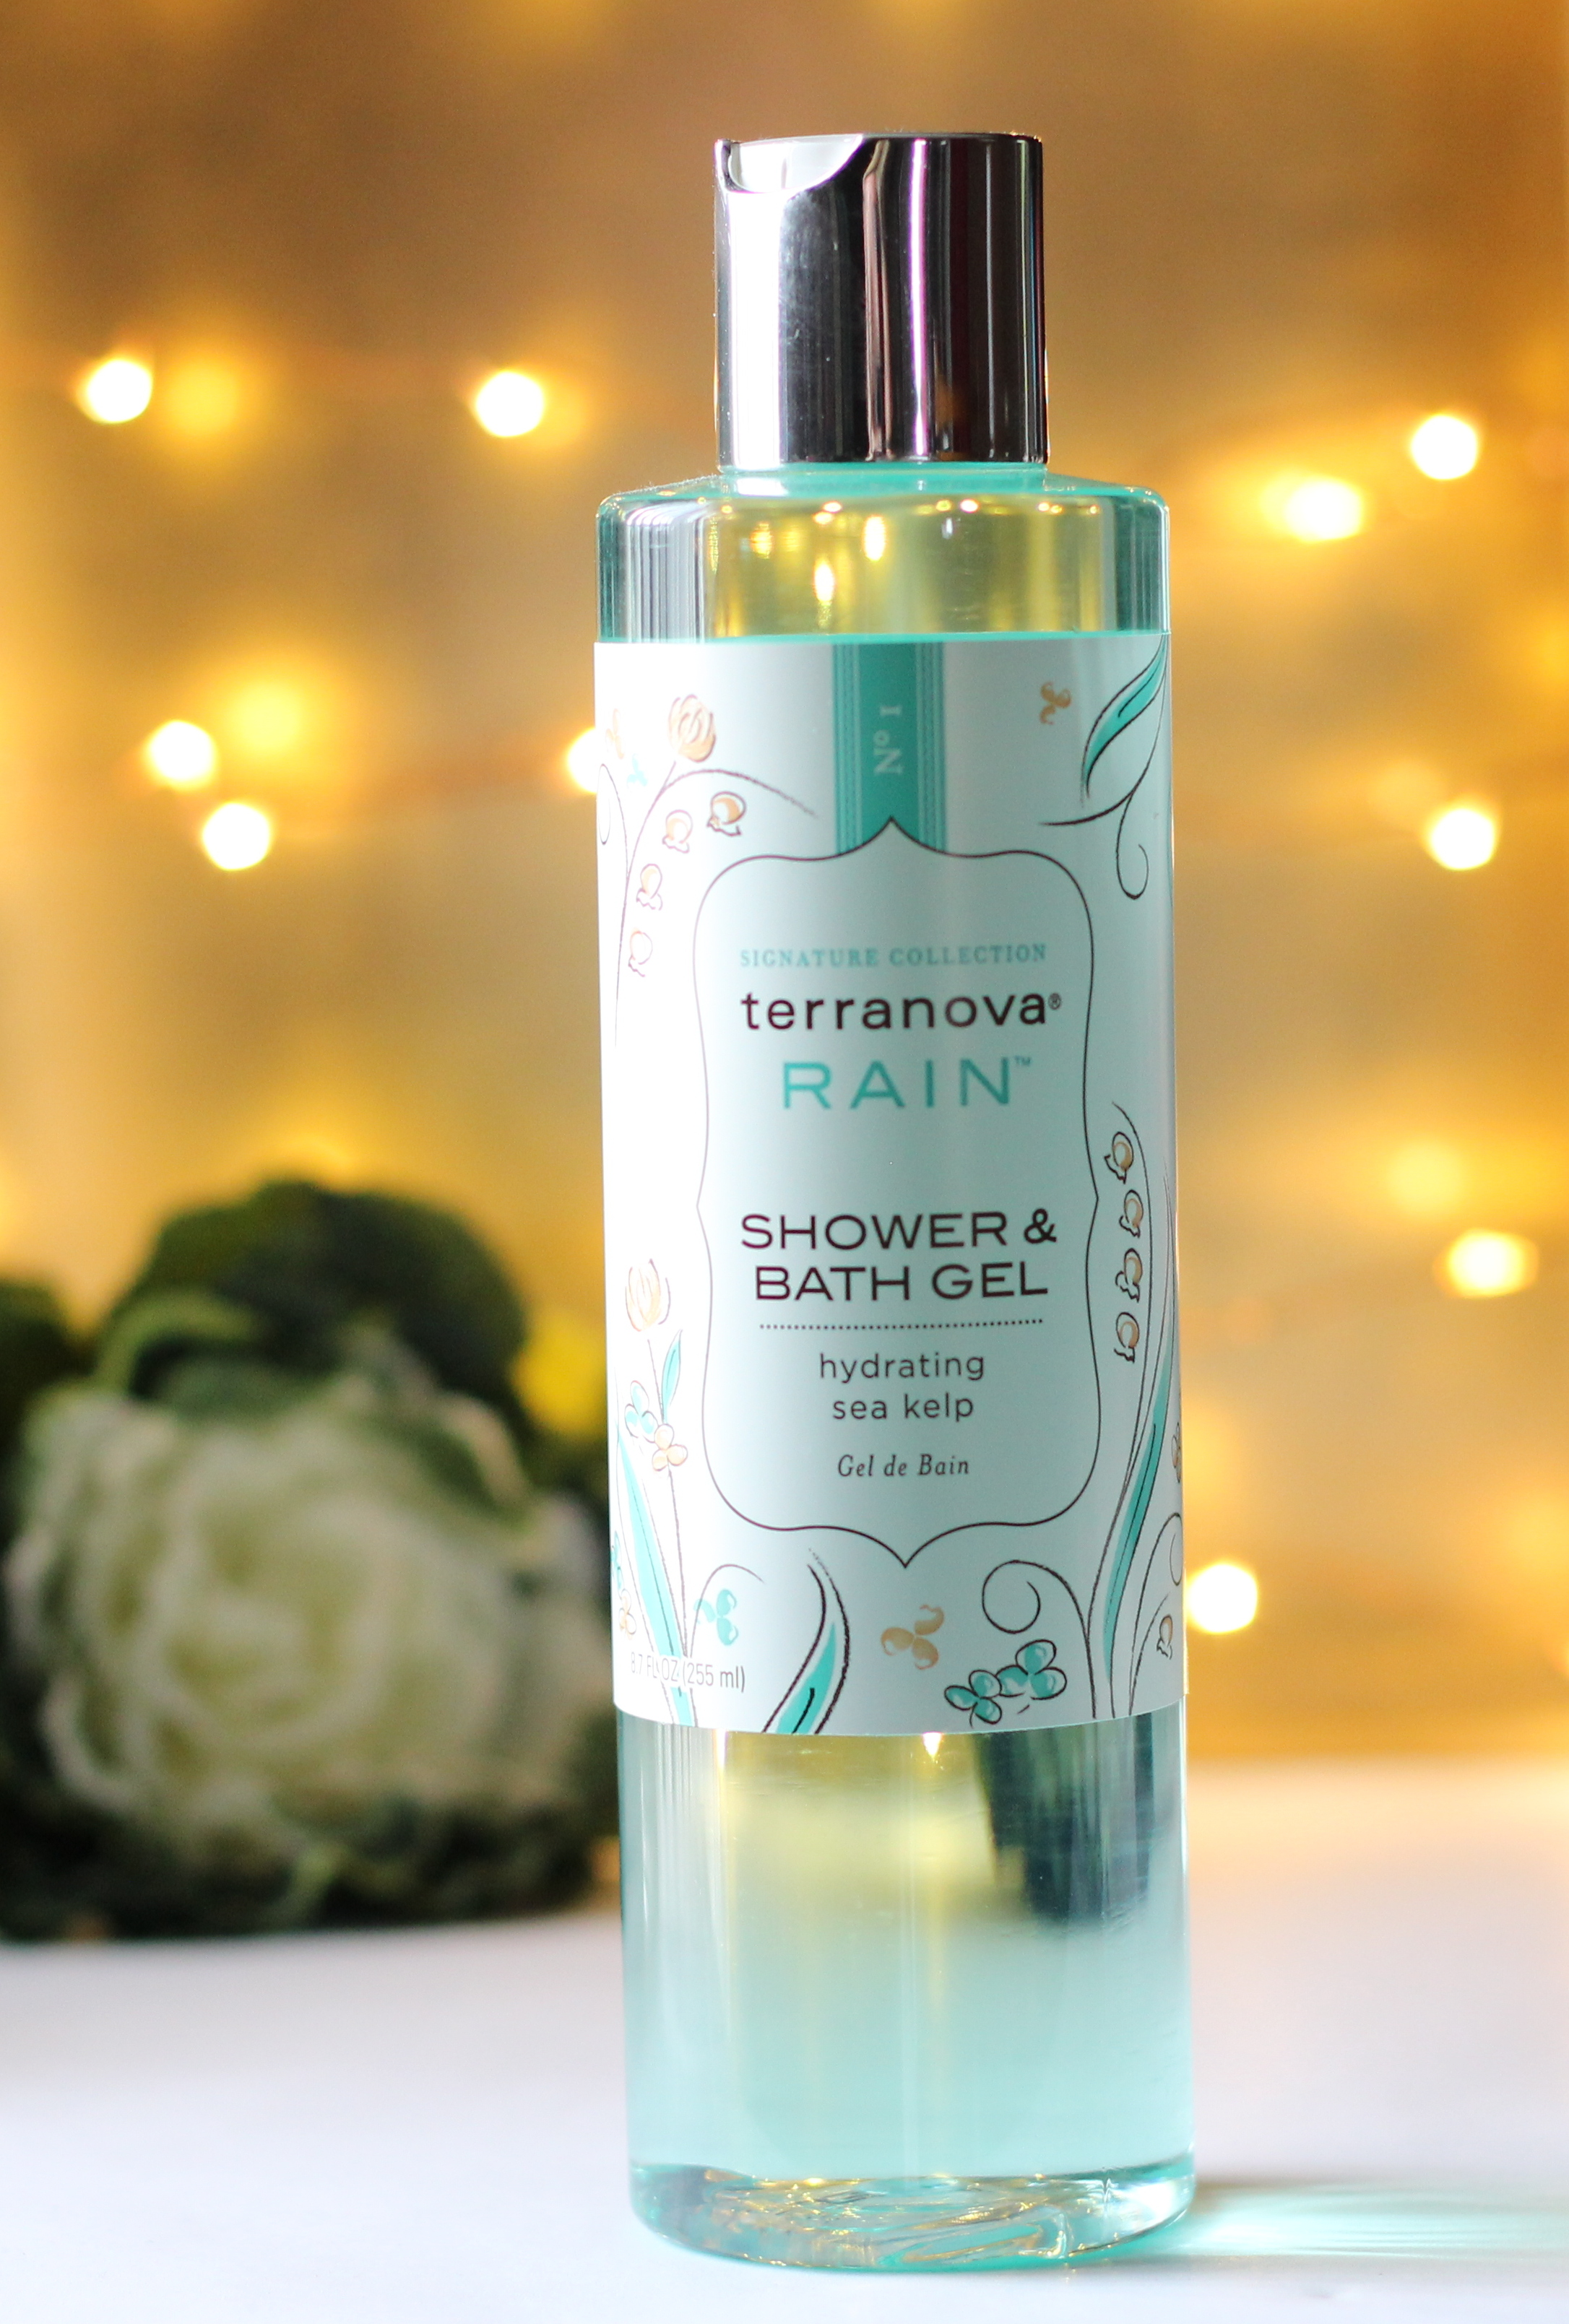 Terranova Rain Shower & Bath Gel for Earth Day